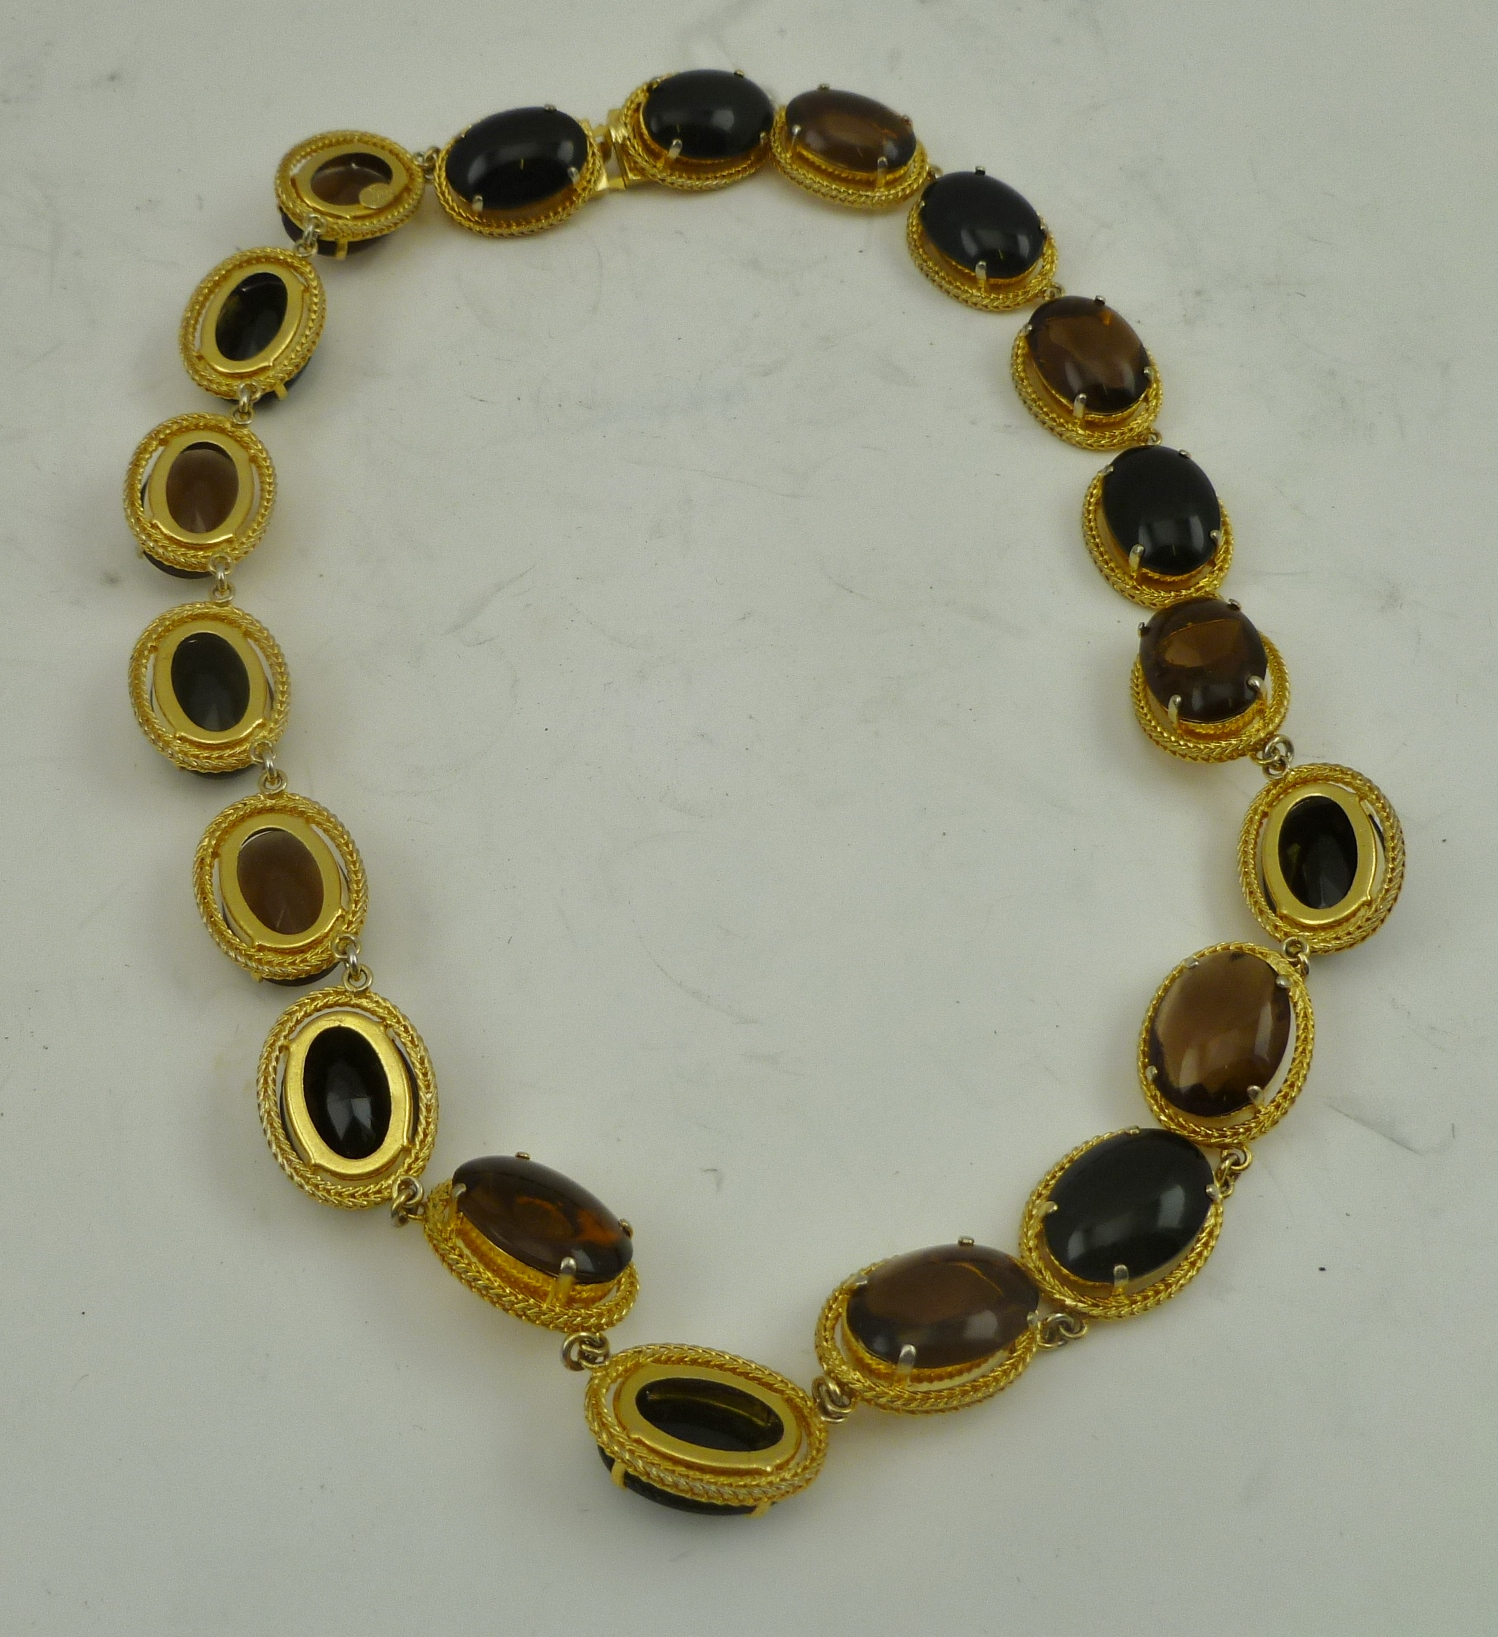 A CHRISTIAN DIOR, HENKEL AND GROSSE NECKLACE, the gilt metal links set cabochon black amber glass beads (purchased by vendor in 1963)